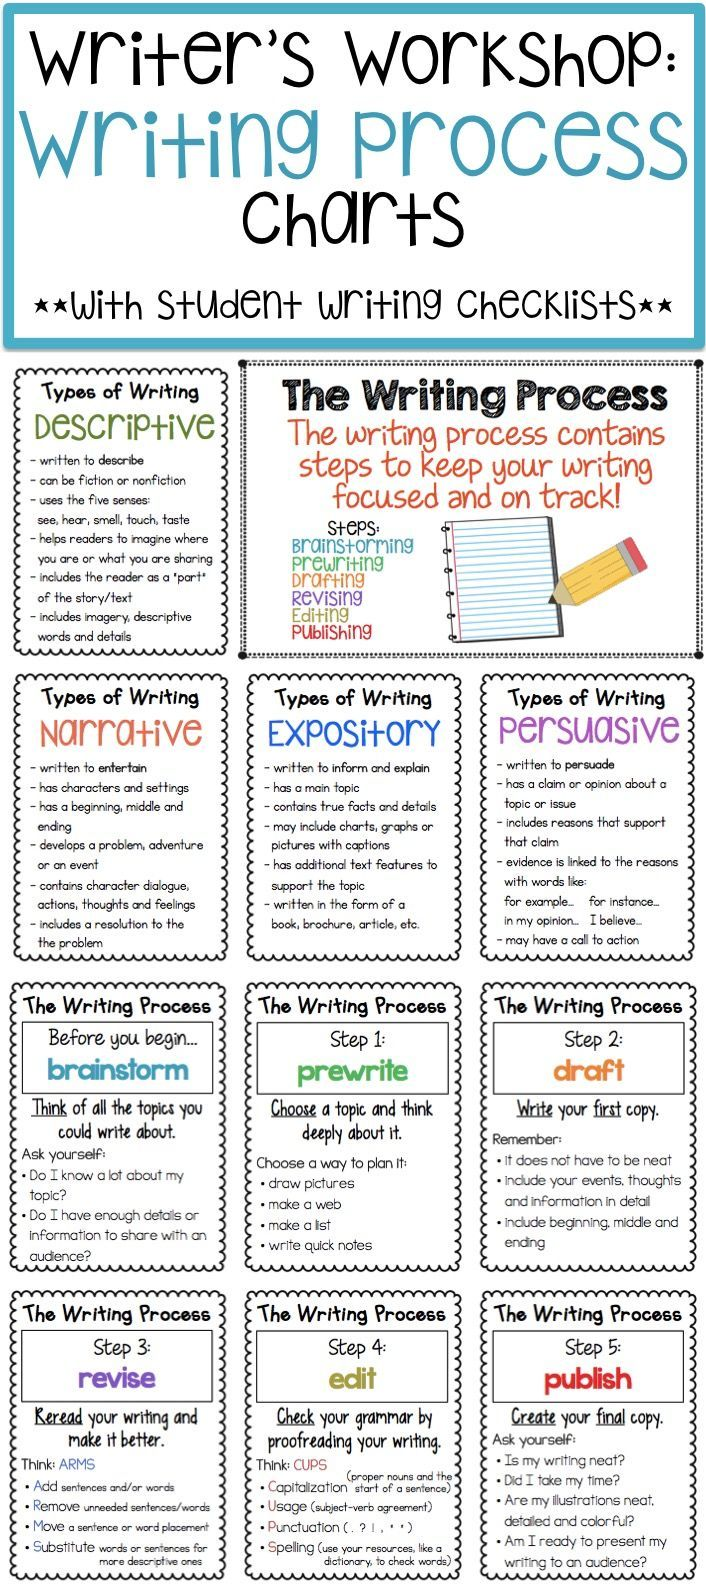 Writing Process Charts And Checklists  Tpt  Pinterest  Writing  Types Of Writing And Writing Process Charts